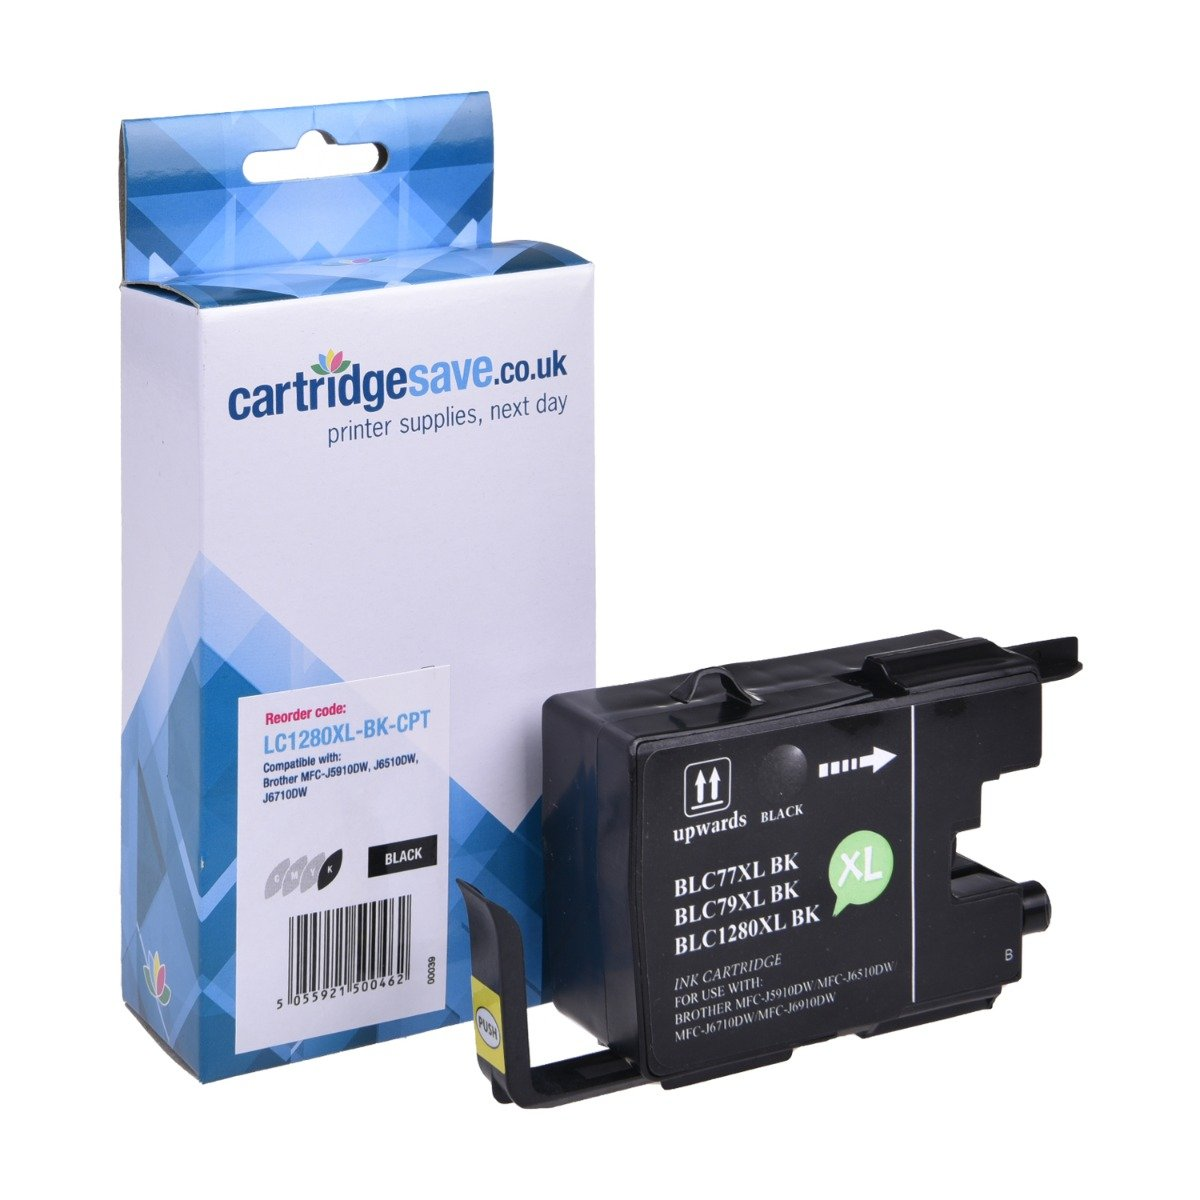 Compatible High Capacity Black Brother LC1280XL-BK Ink Cartridge (Replaces LC-1280XLBK Inkjet Printer Cartridge)